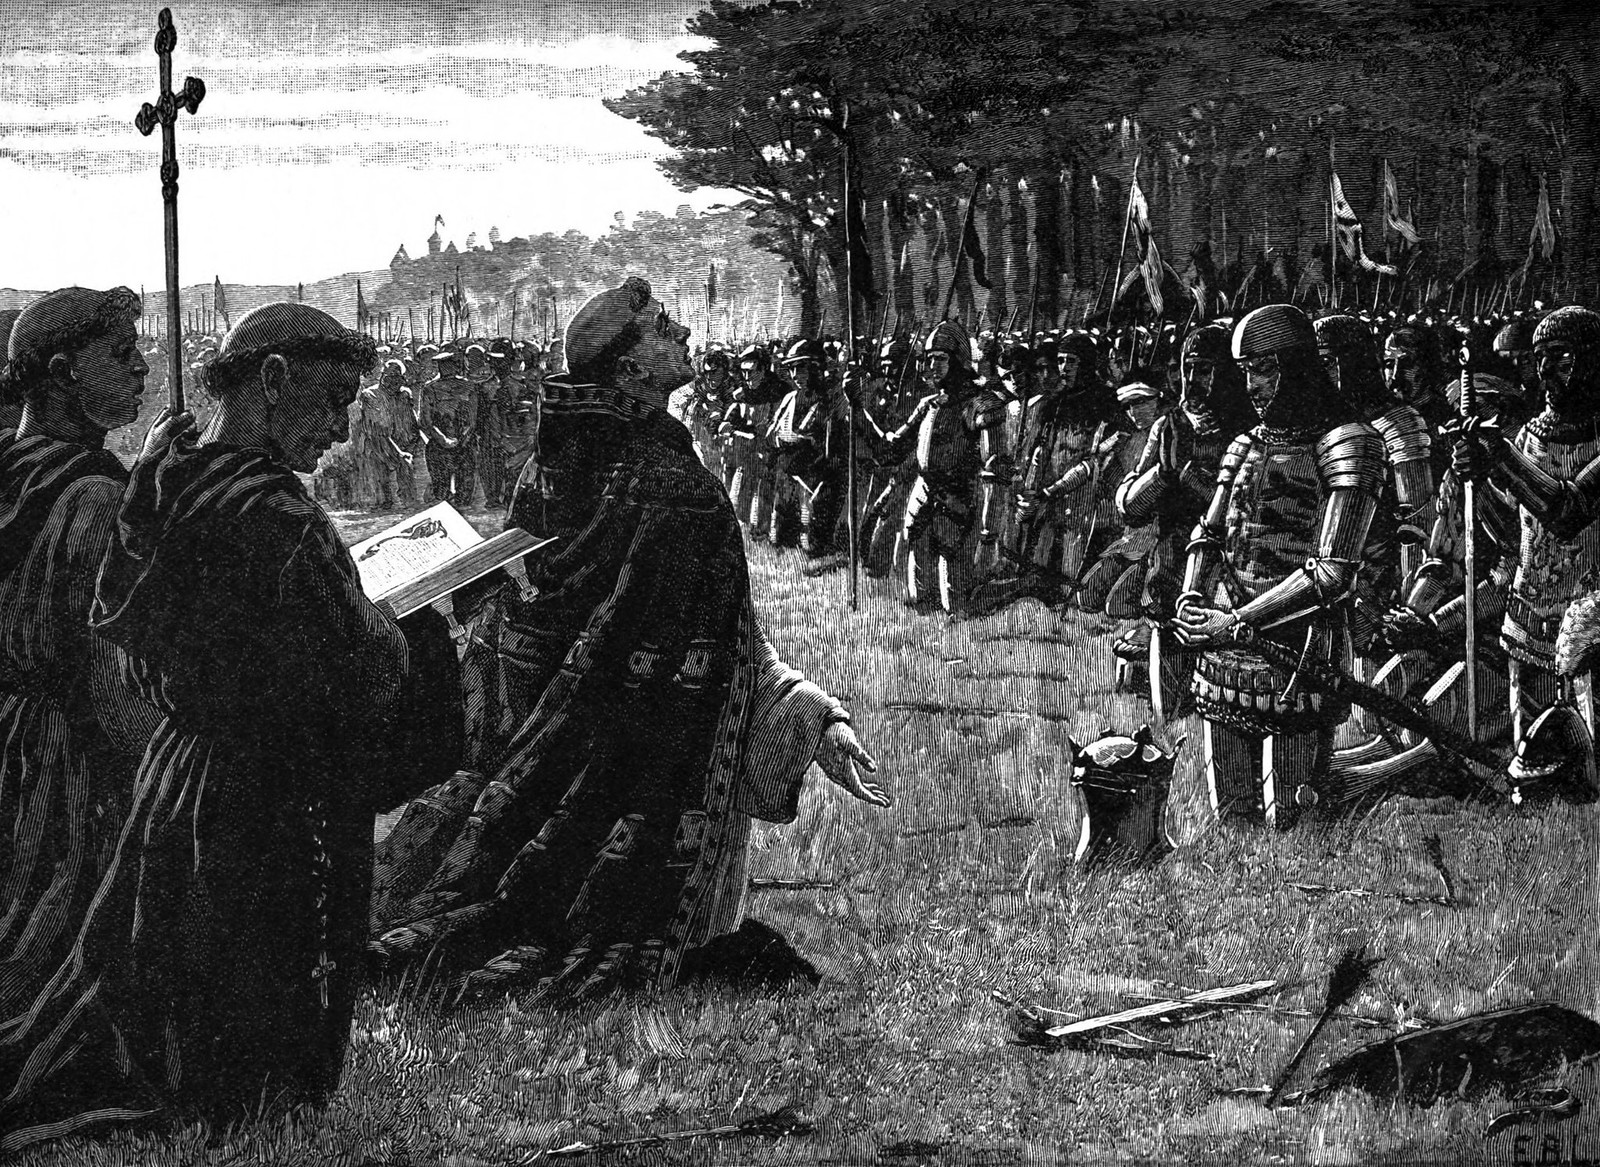 Henry V and his army give thanks on the field of Agincourt